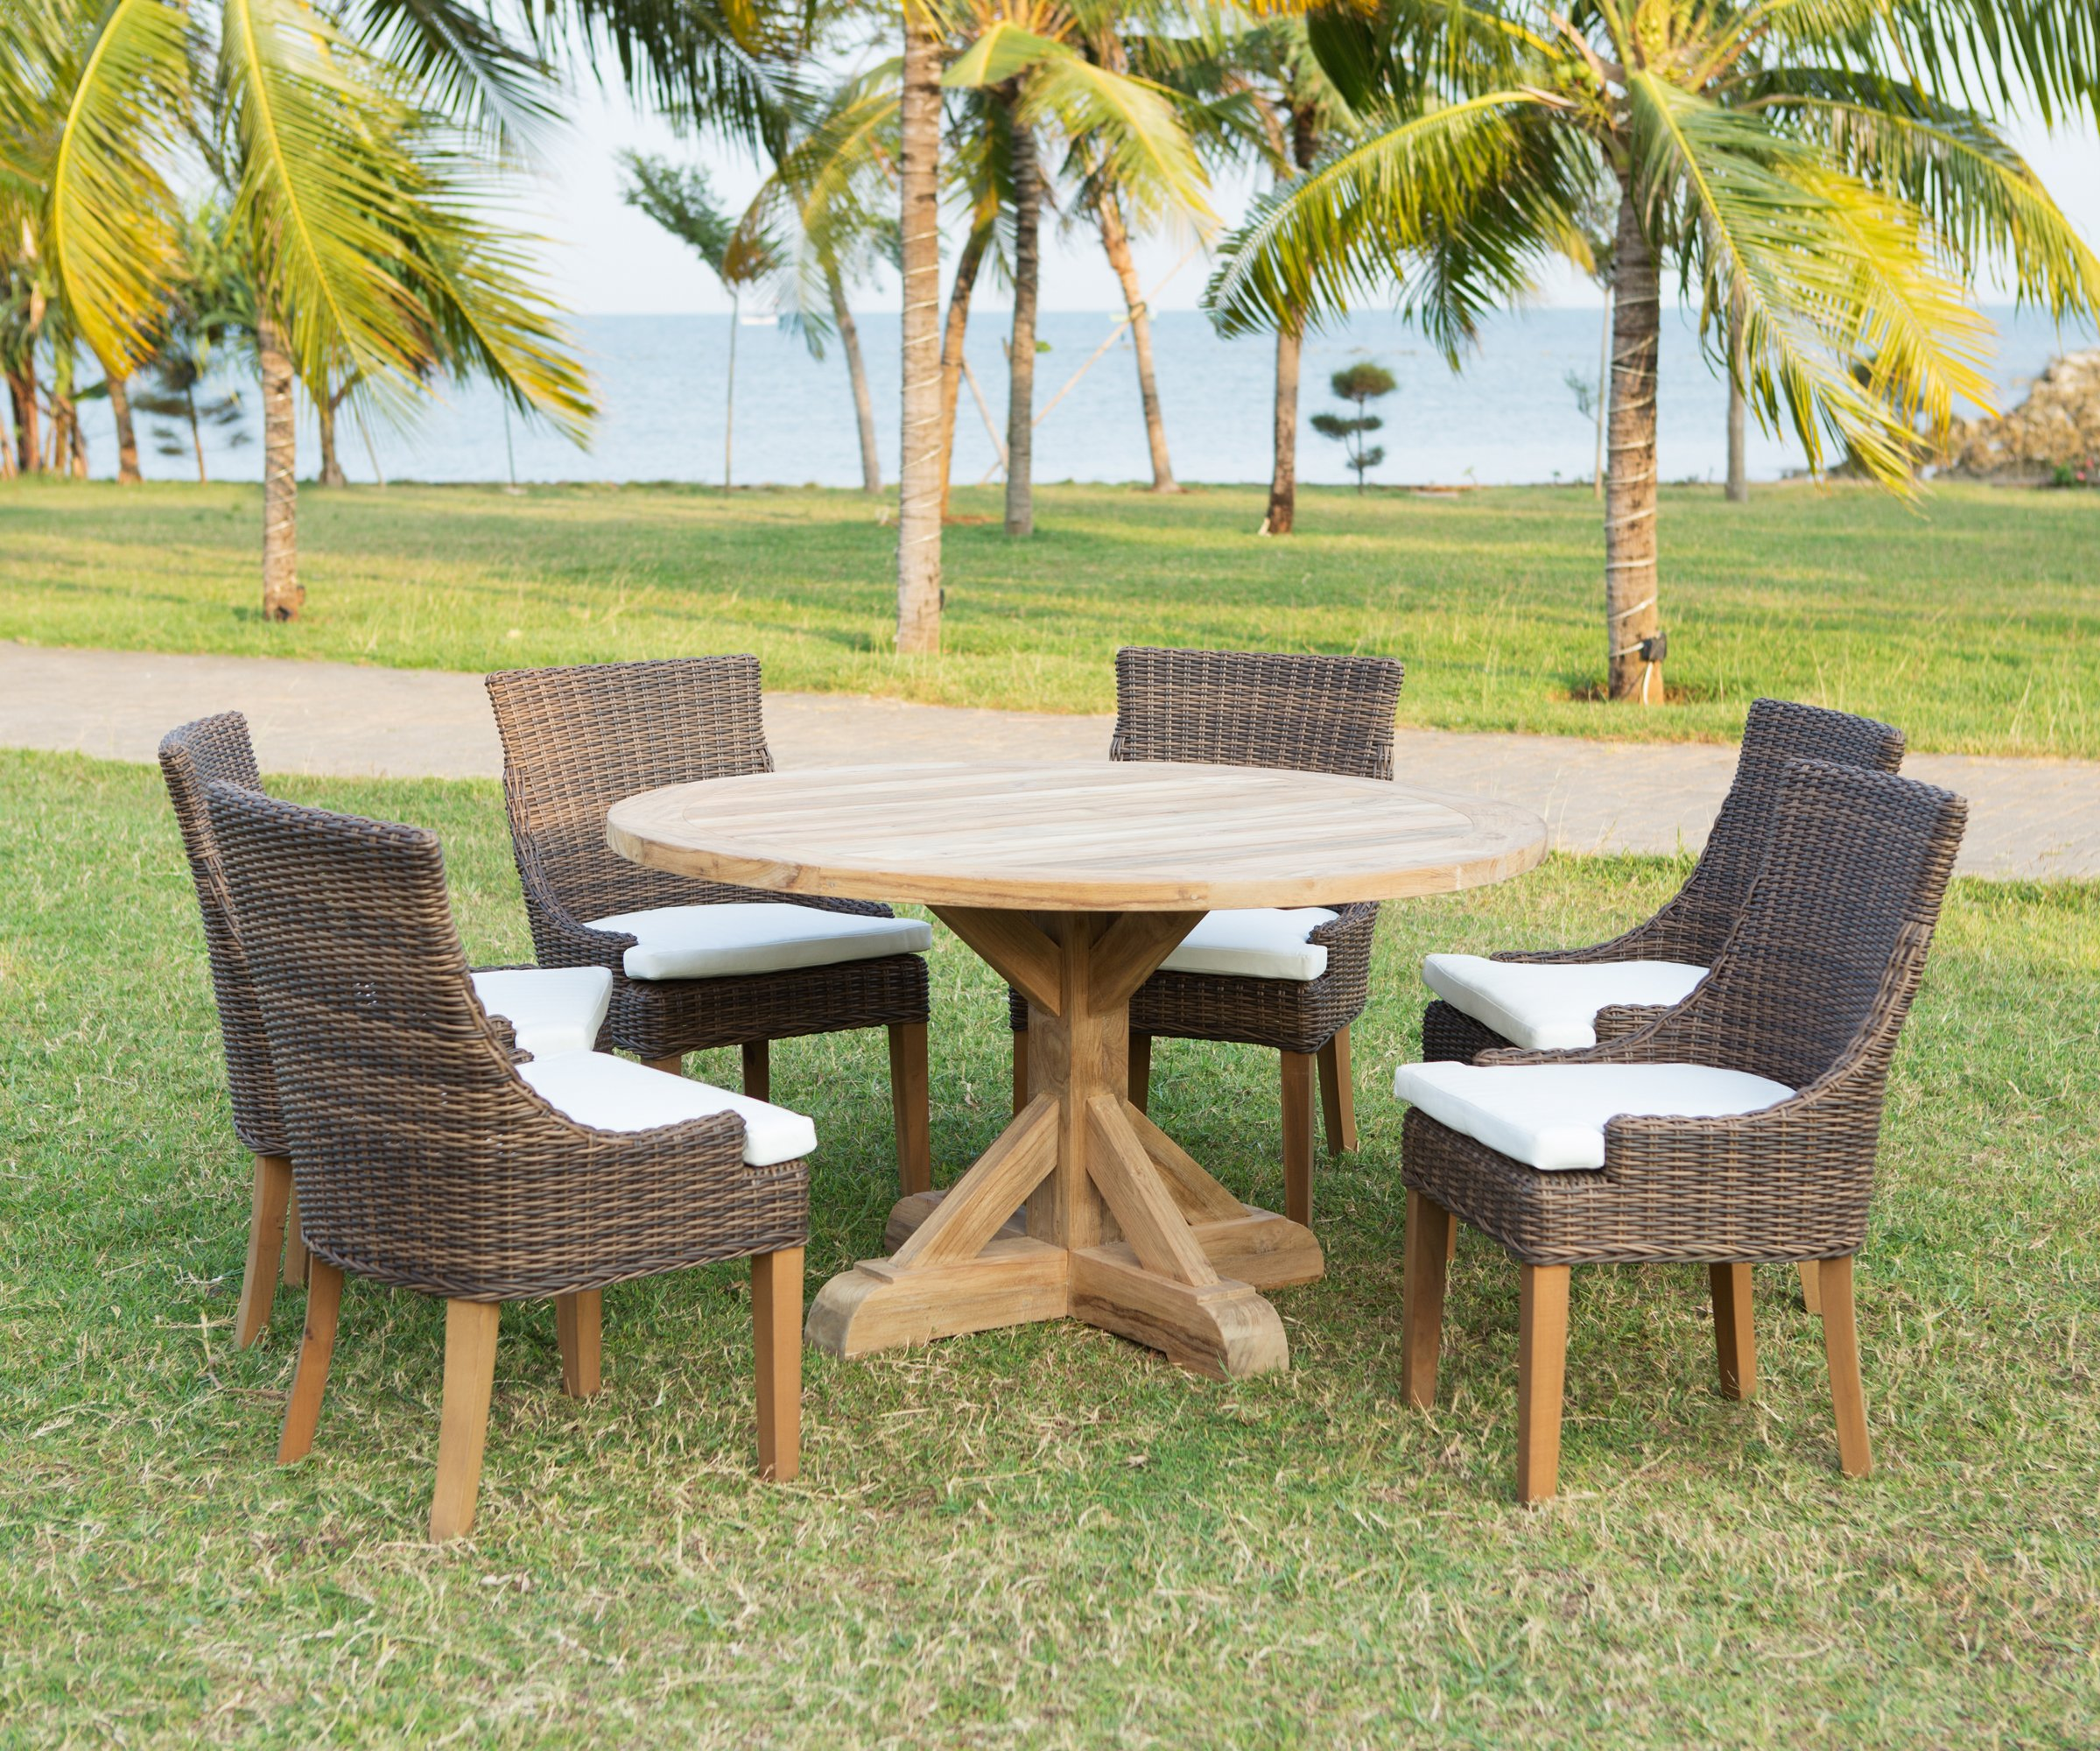 Xena Reclaimed Outdoor Dining Table | Padma's Plantation